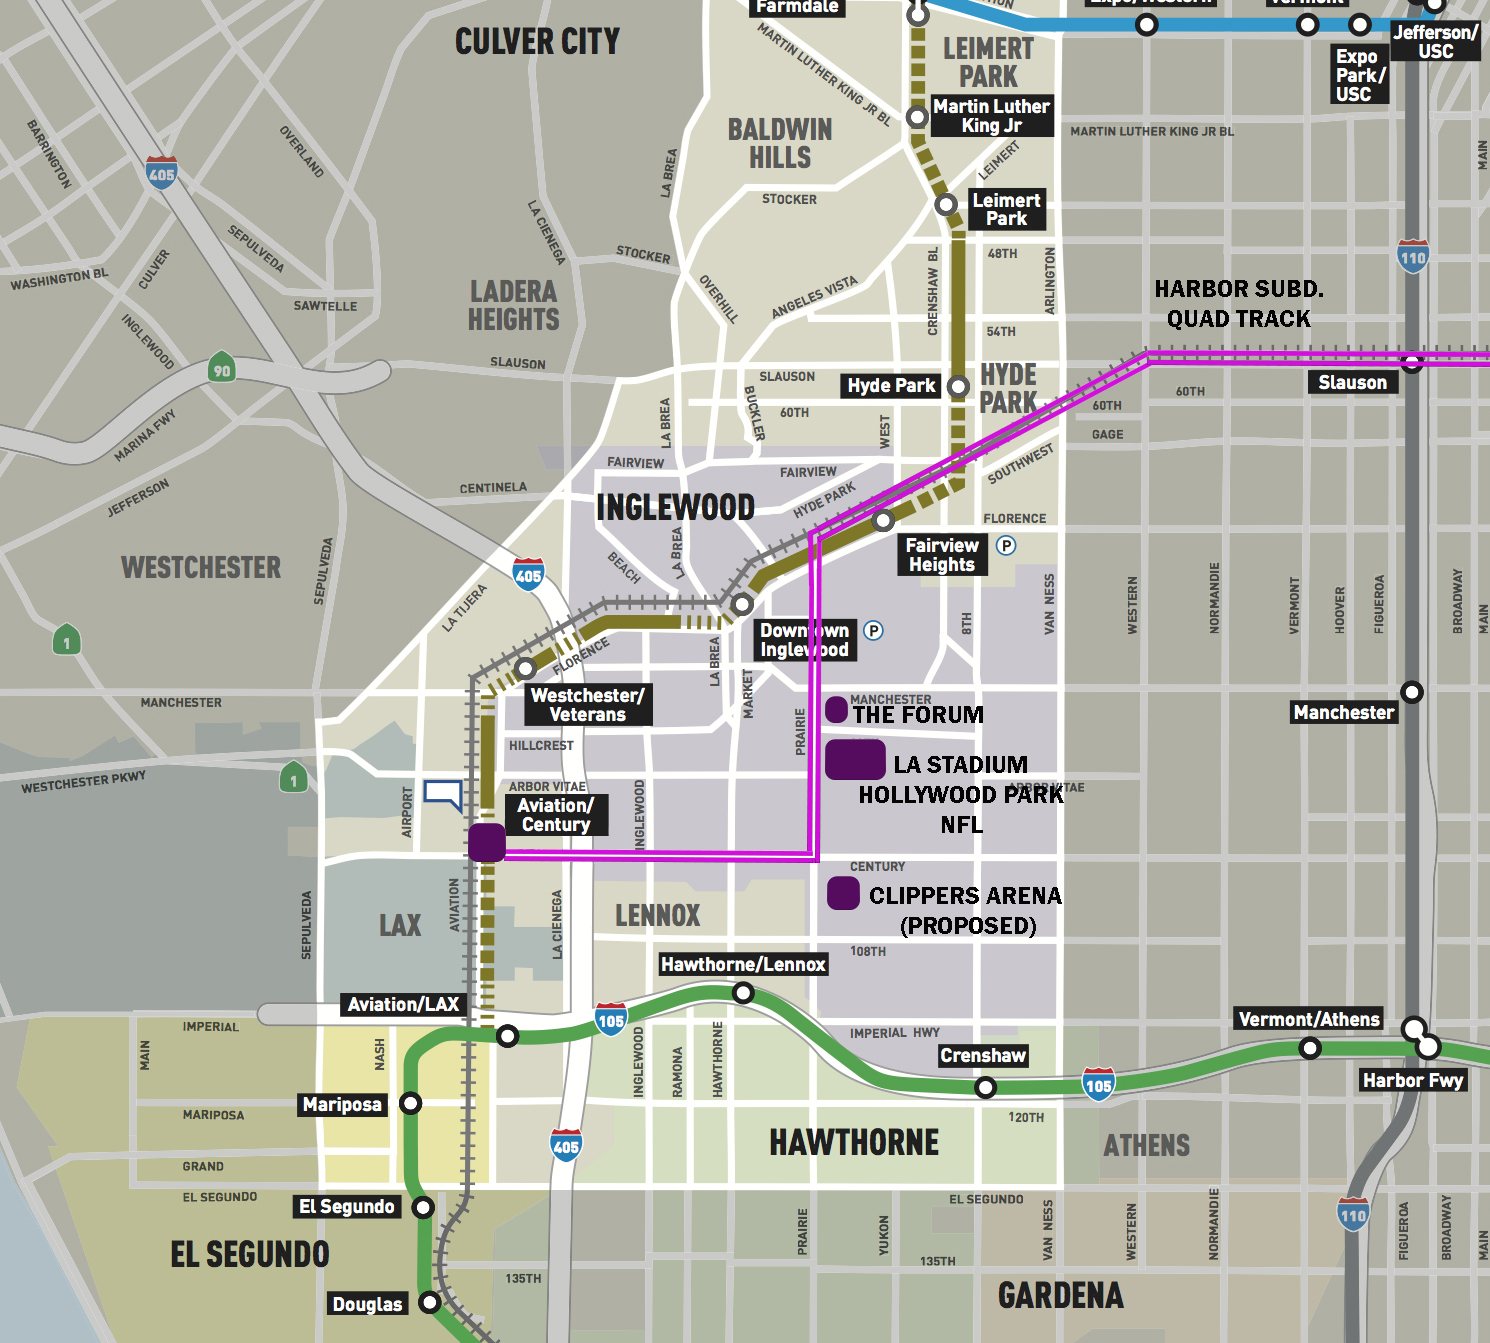 HARBOR SUBDIVISION - harbor subdivision (lax/inglewood to dtla)Creating a brand new line out of thin air to serve LAX, the Inglewood Sports & Entertainment District, South LA, and Downtown Los AngelesCurrent Allotment: $0Est. HyRail Cost: $3 BillionLearn More...